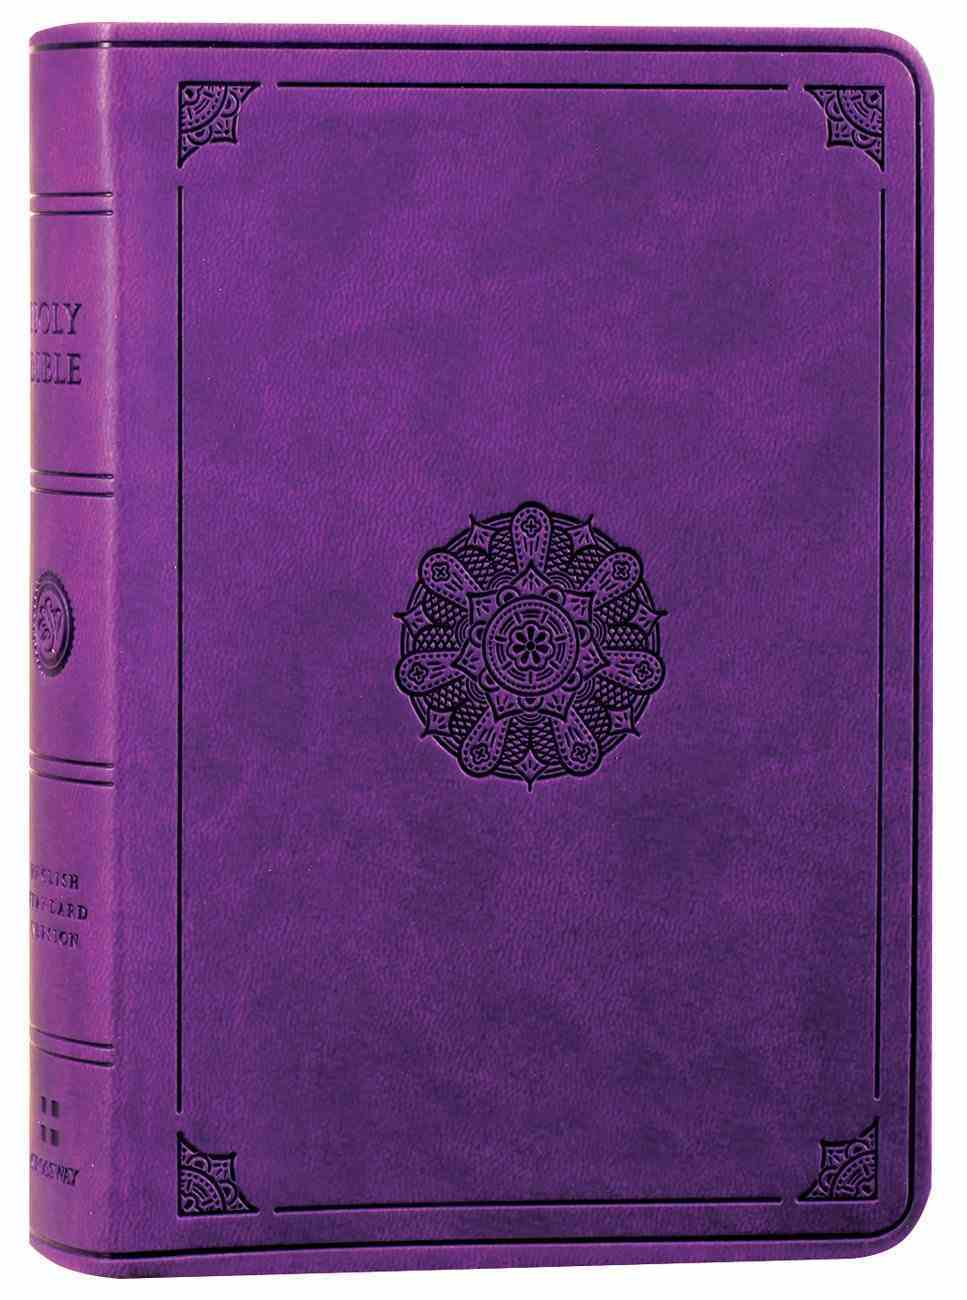 ESV Value Large Print Compact Bible Lavender Emblem Design (Black Letter Edition) Imitation Leather